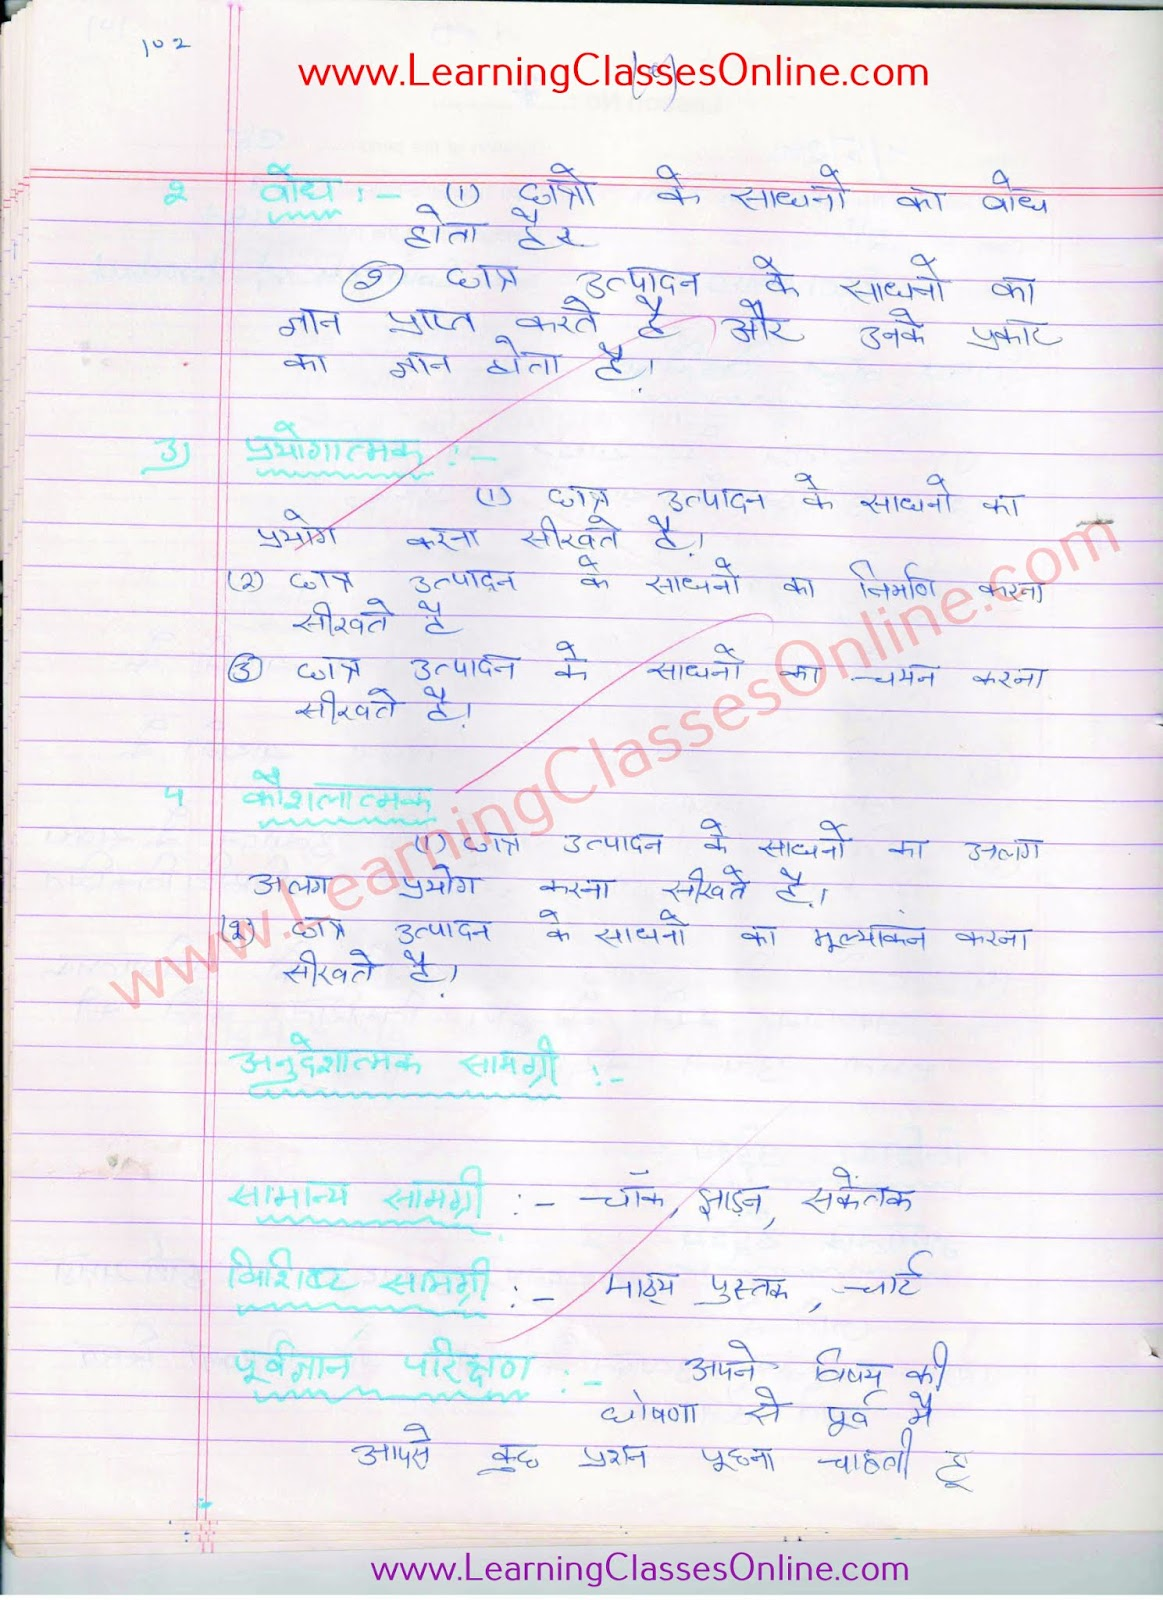 utpadan ka sadhan economics lesson plan in hindi